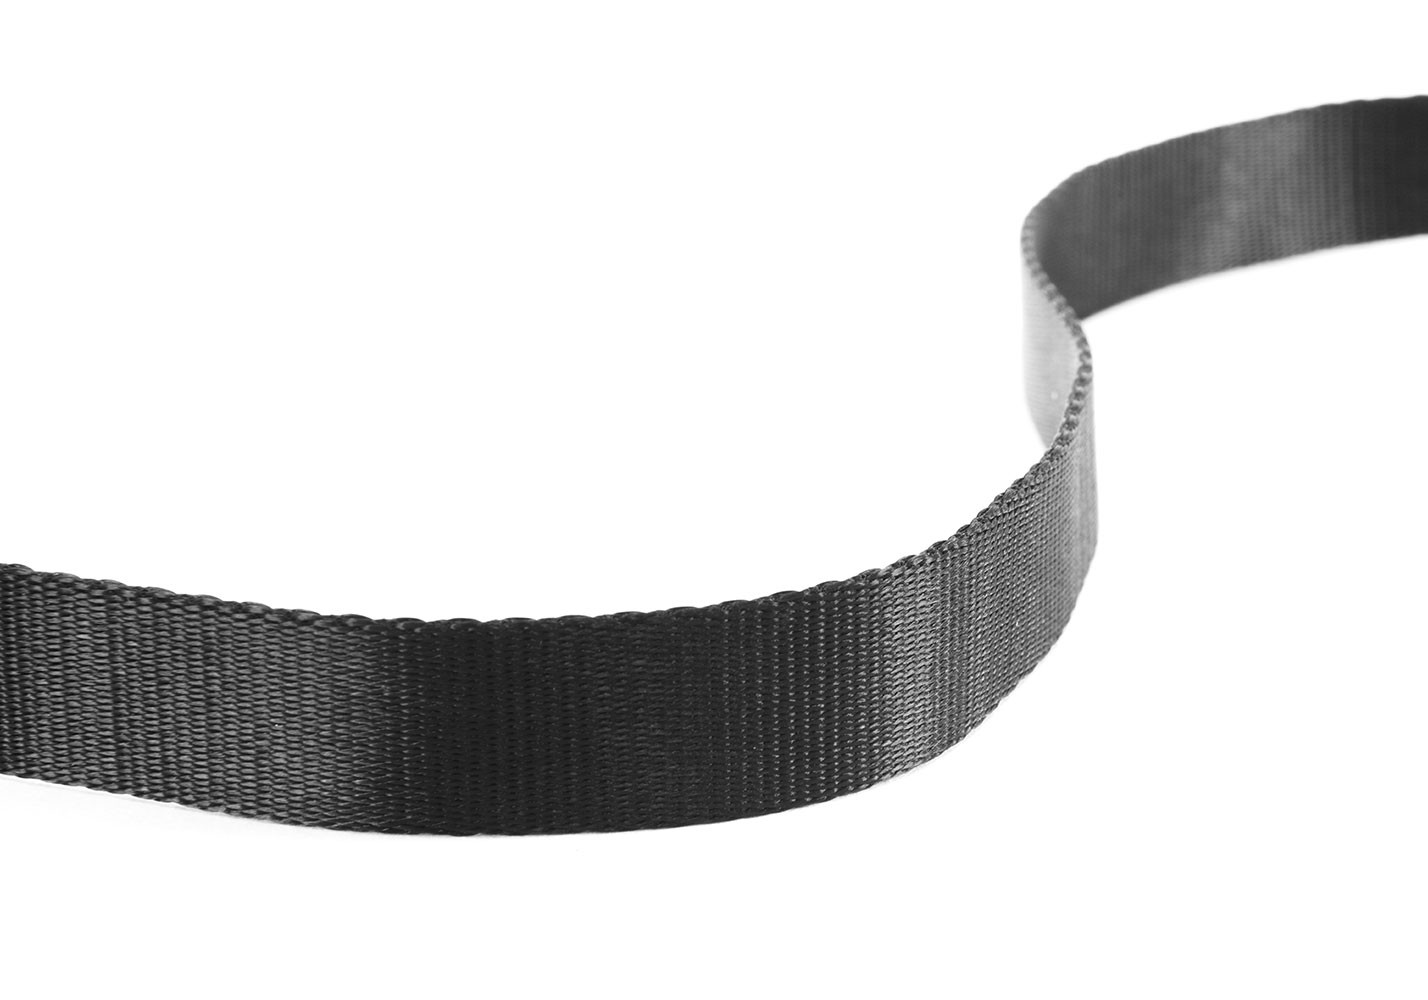 Peak Design Leash strap - NEW - Black color